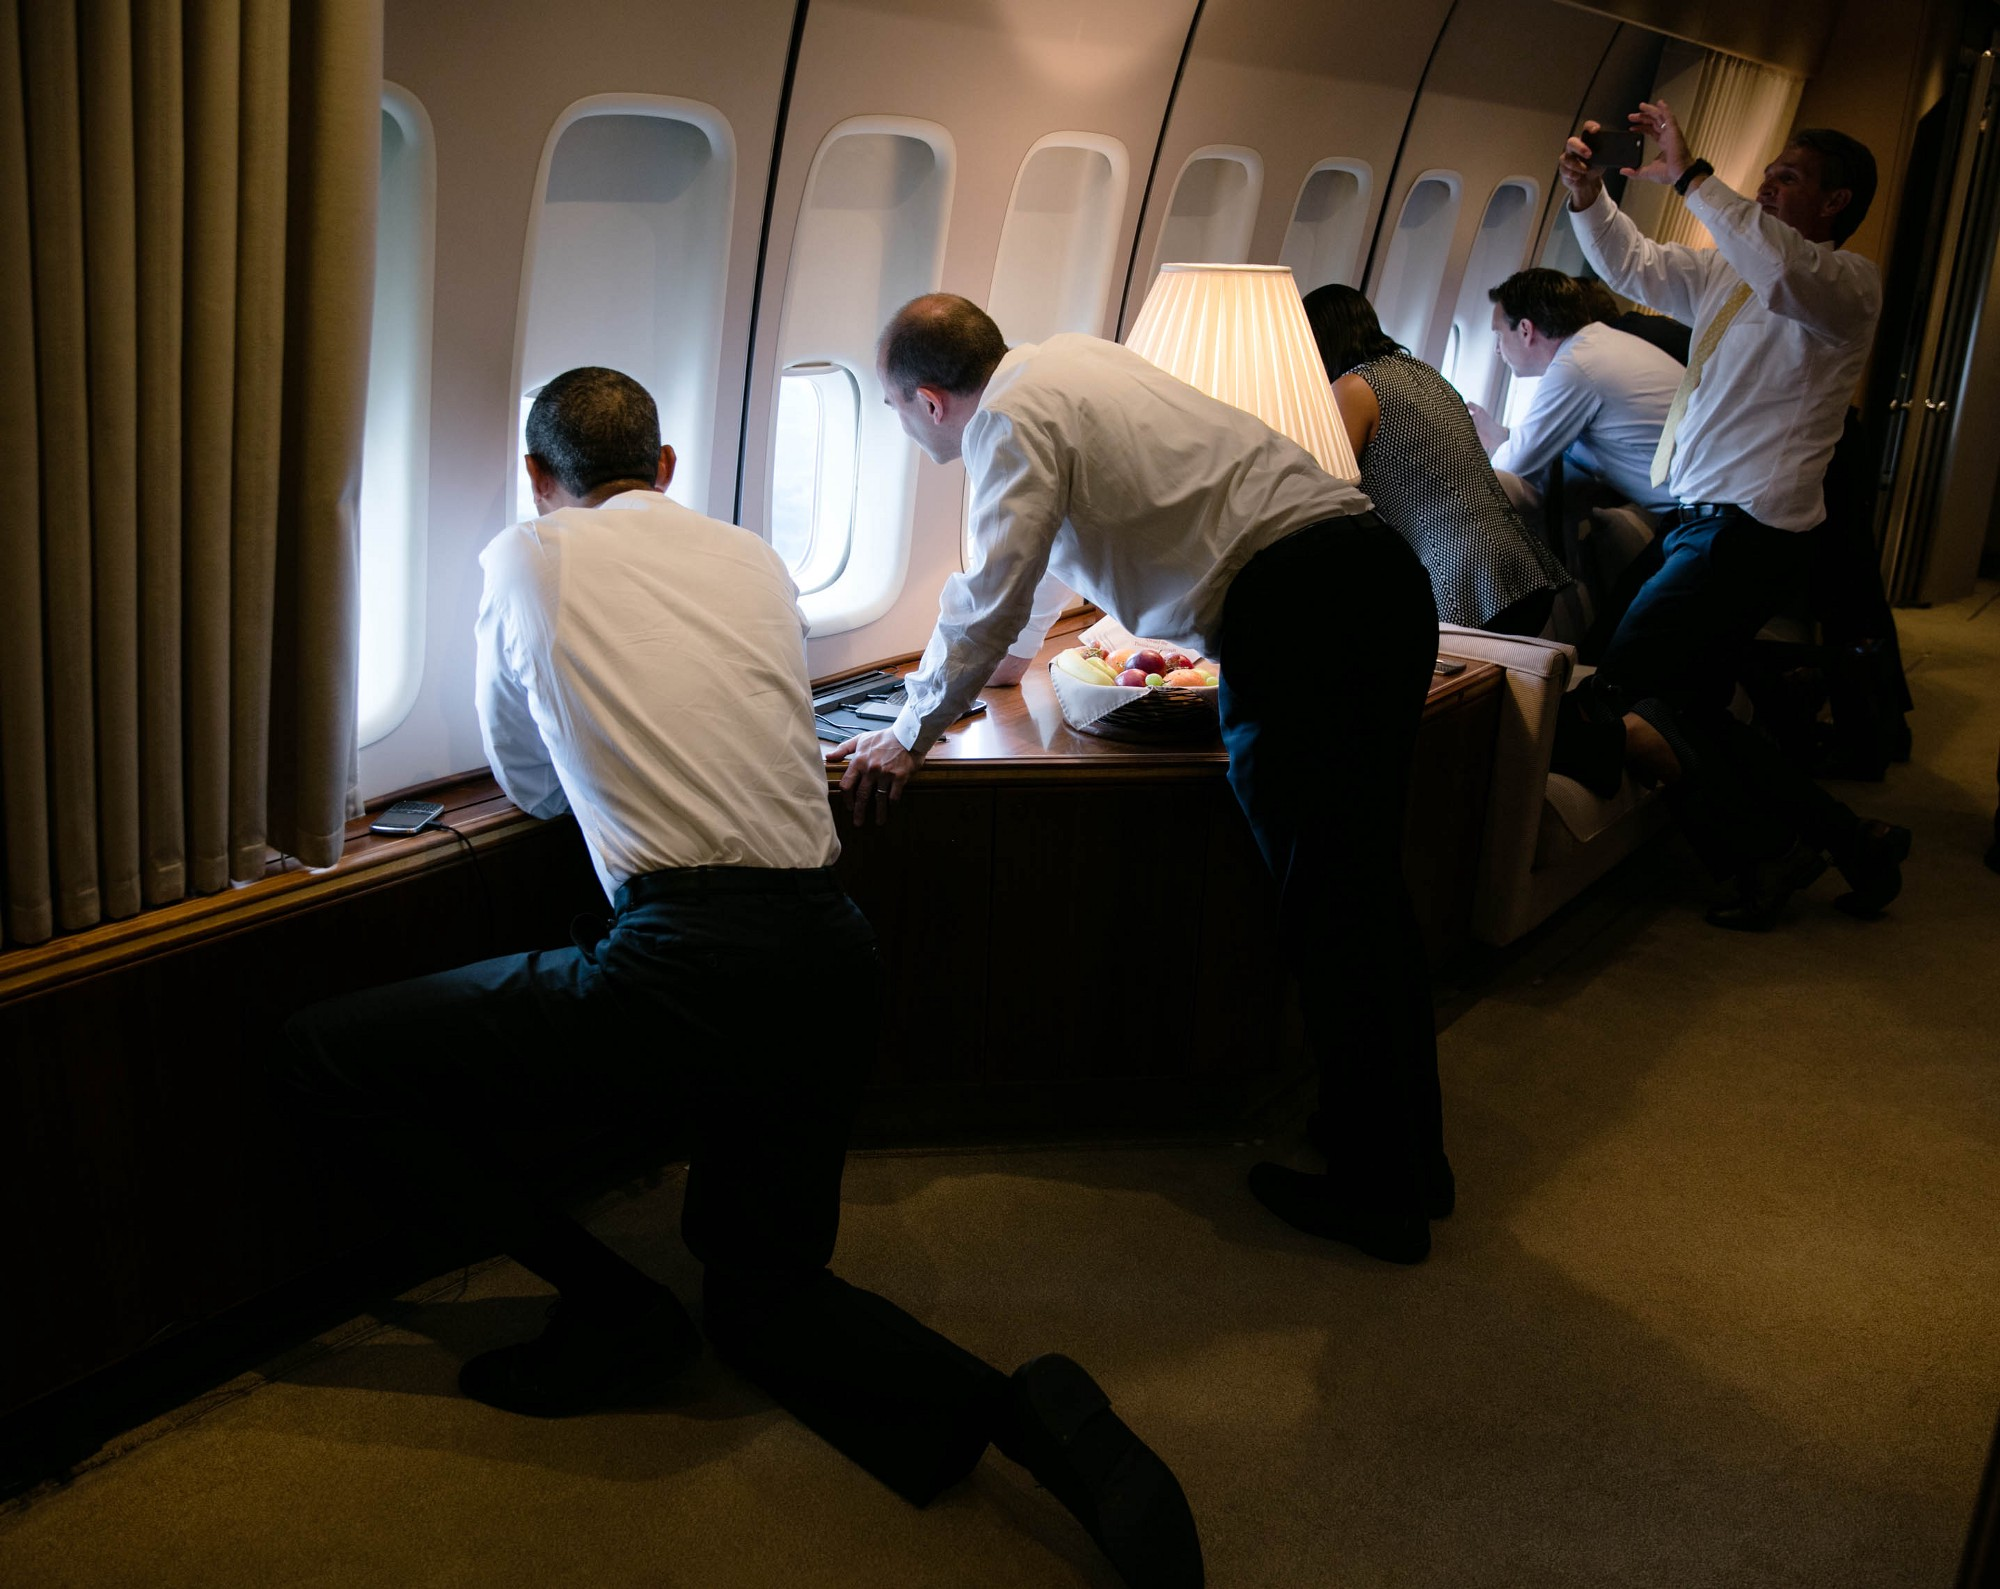 In this photo released by the White House, President Barack Obama joins others in looking out the window of Air Force One on final approach into Havana on March 20, 2016.